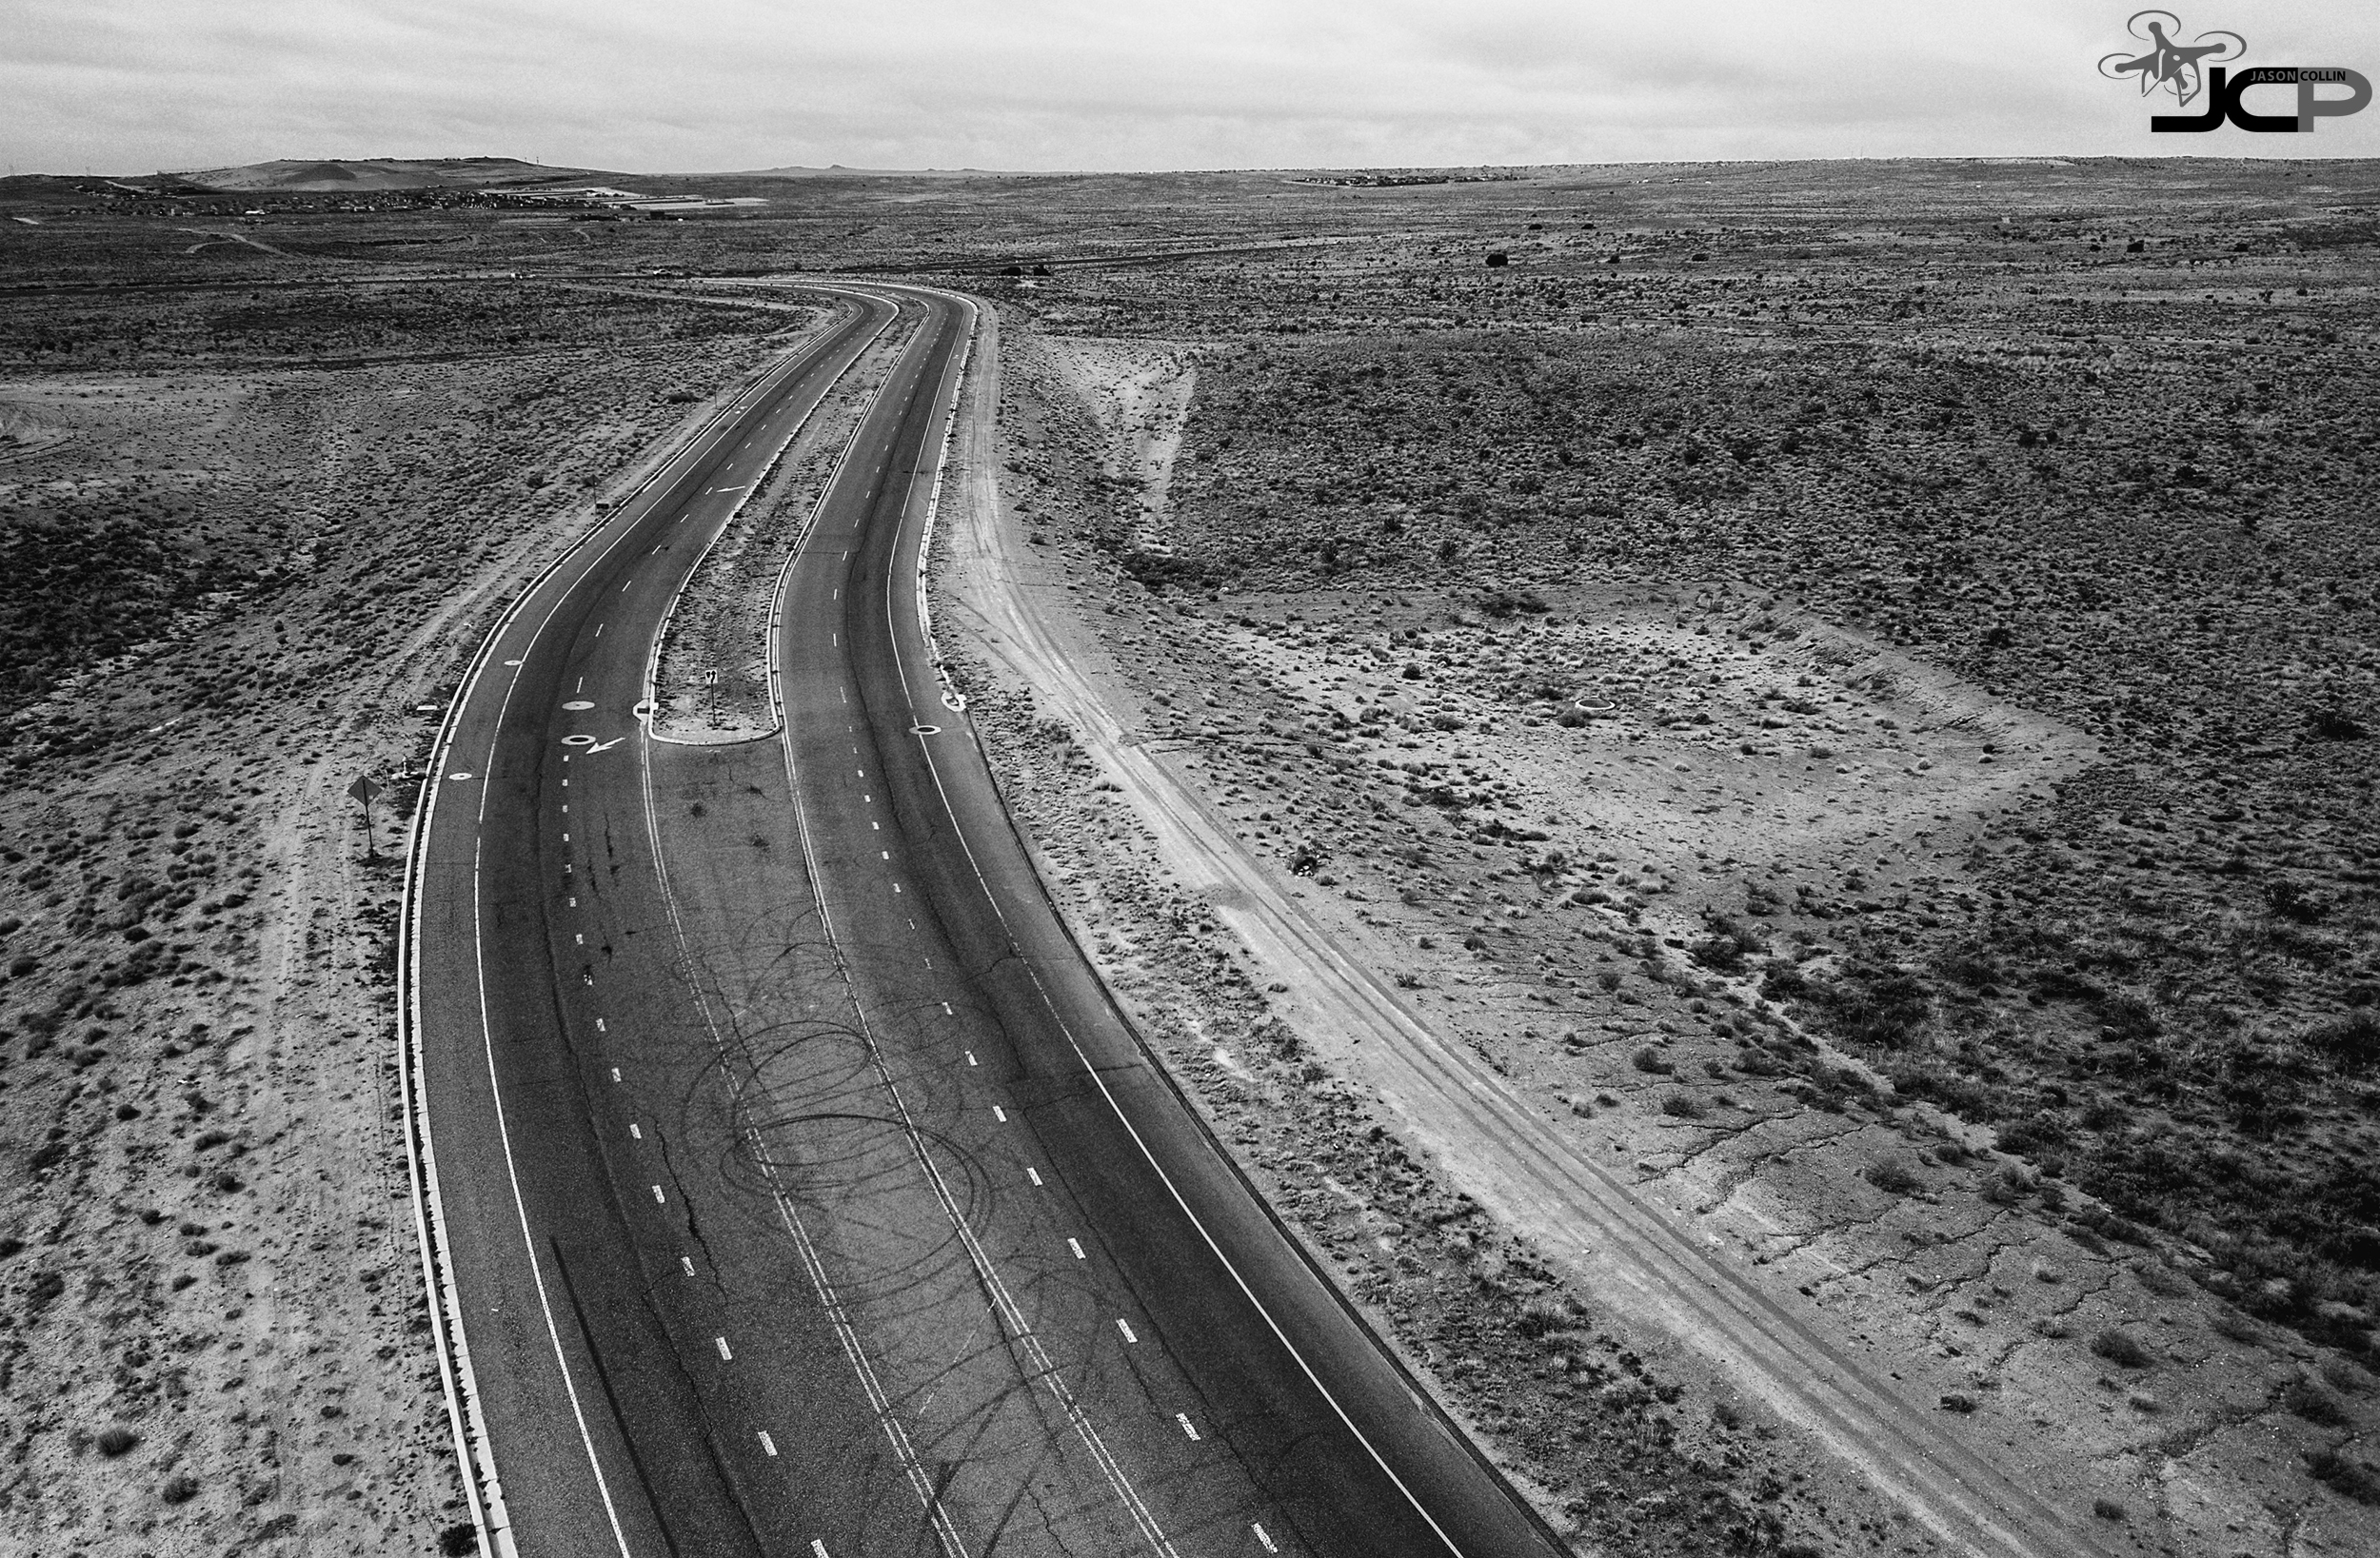 Motorcycles really like to do burnouts on this desert road in New Mexico - drone aerial photo